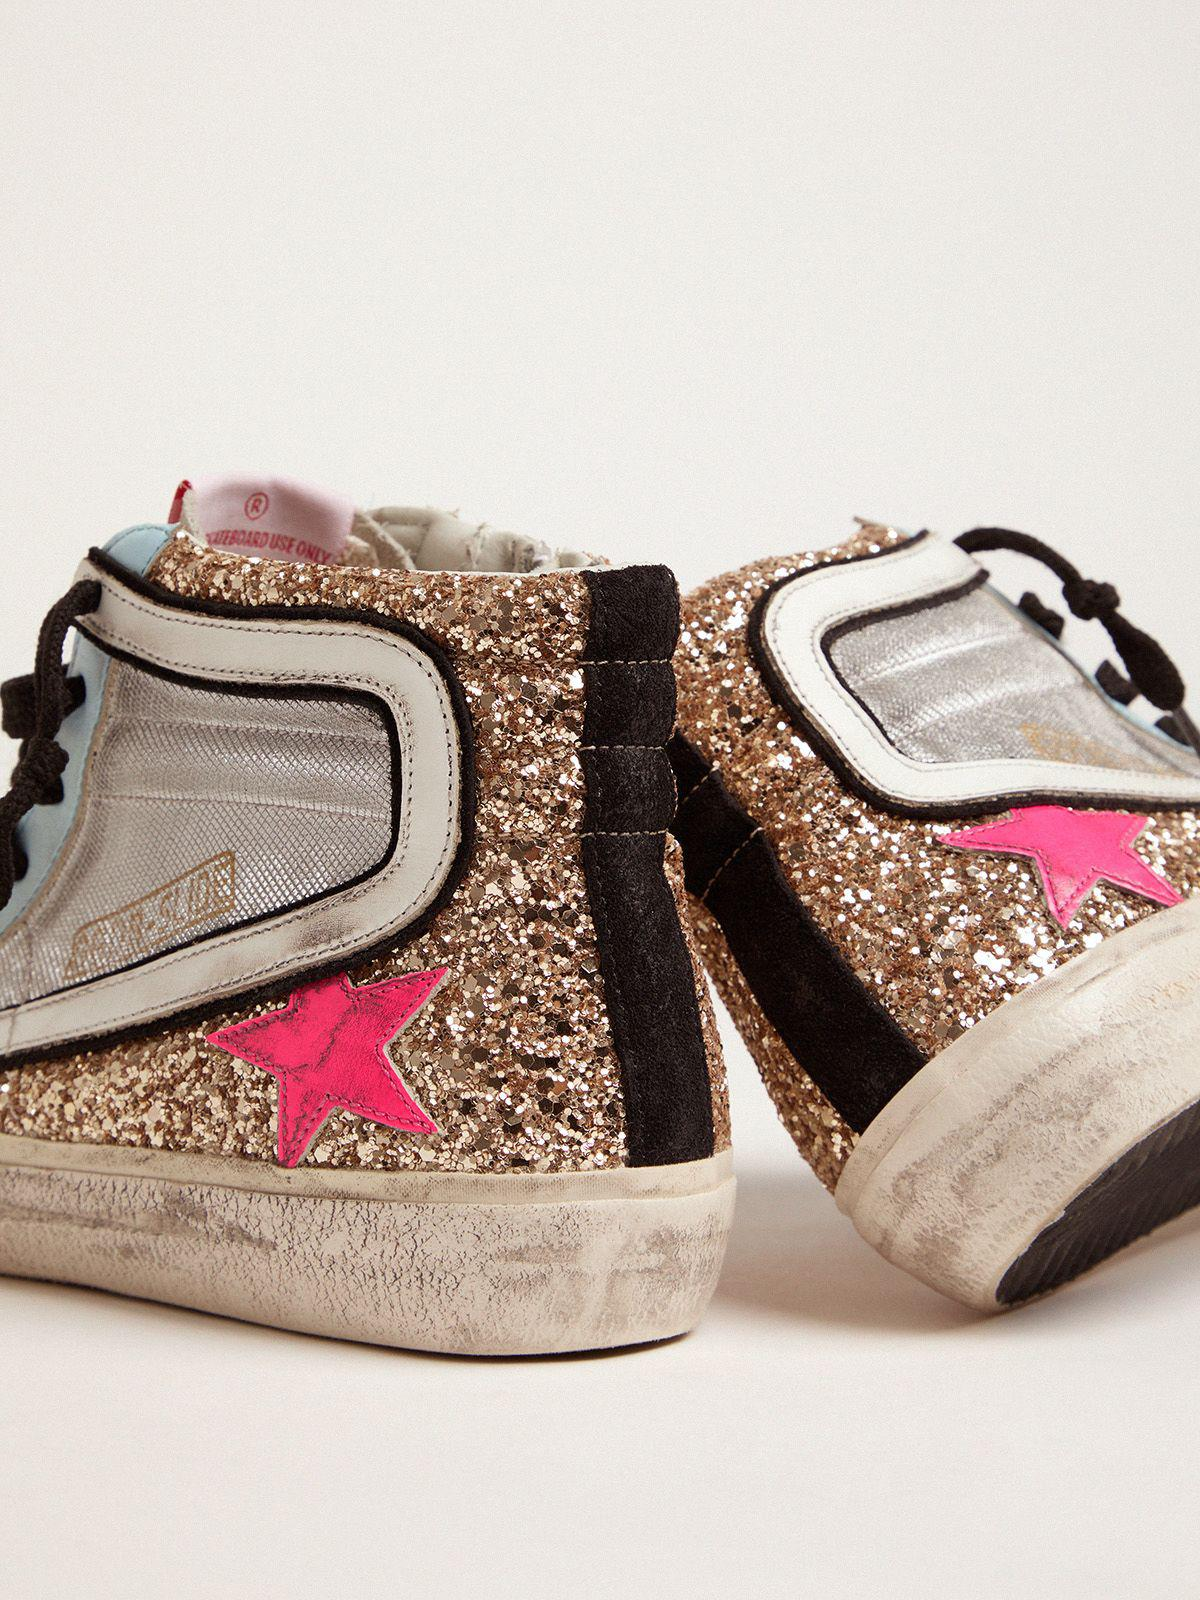 Slide LTD sneakers with glitter and fuchsia star 4